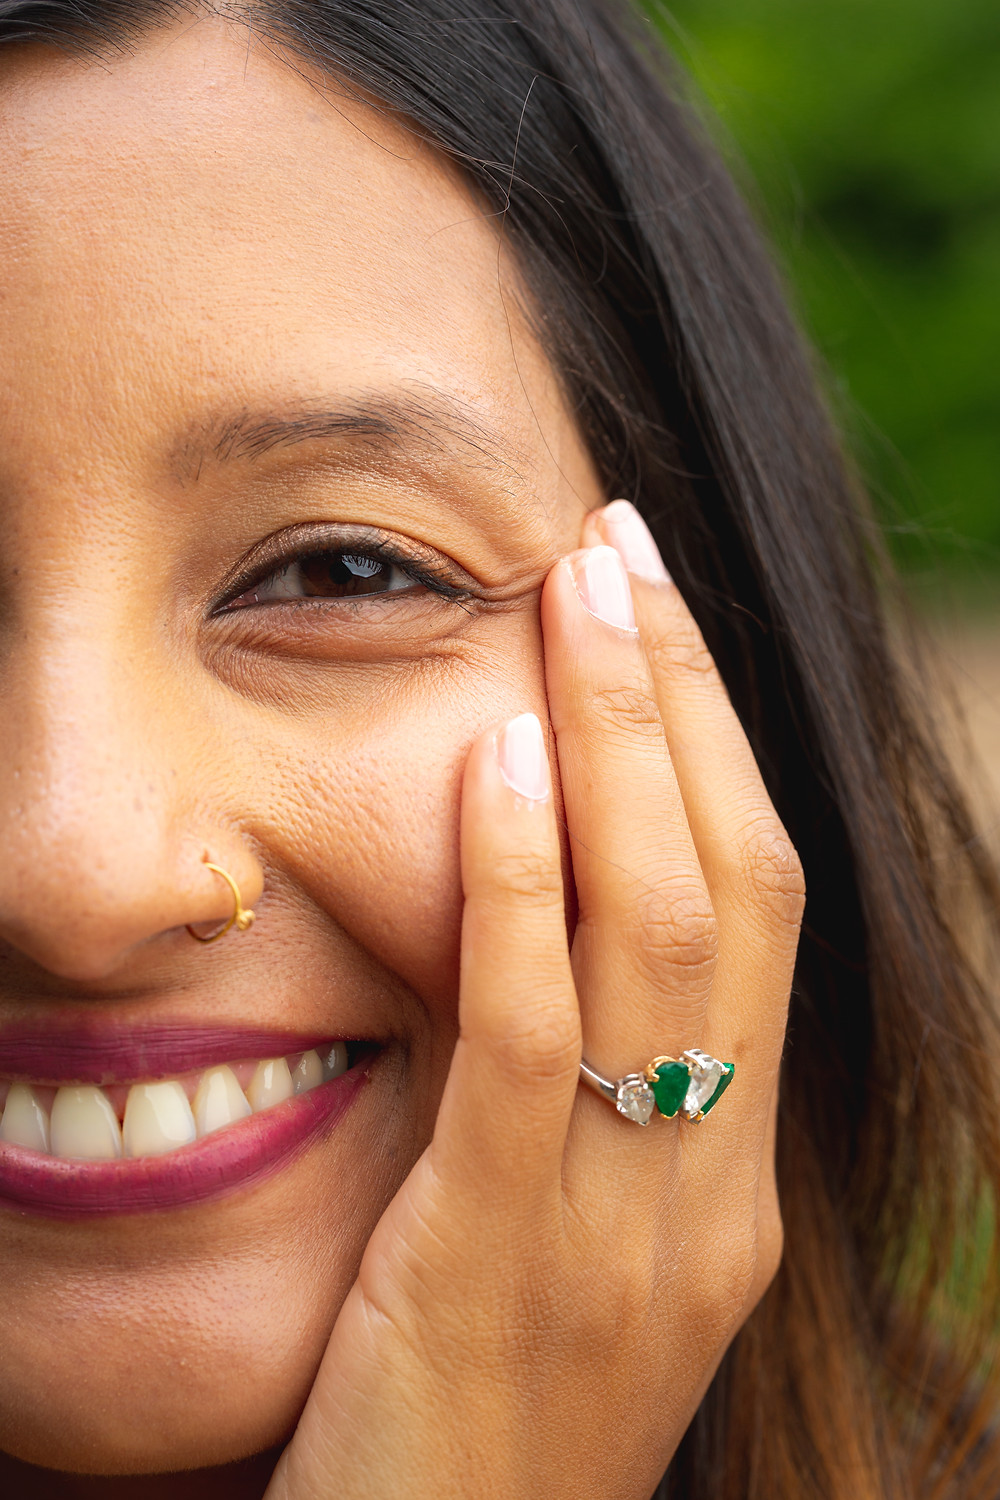 UK shows off her smile and her engagement ring during the engagement session at Meridian Hill Park in Washington DC.